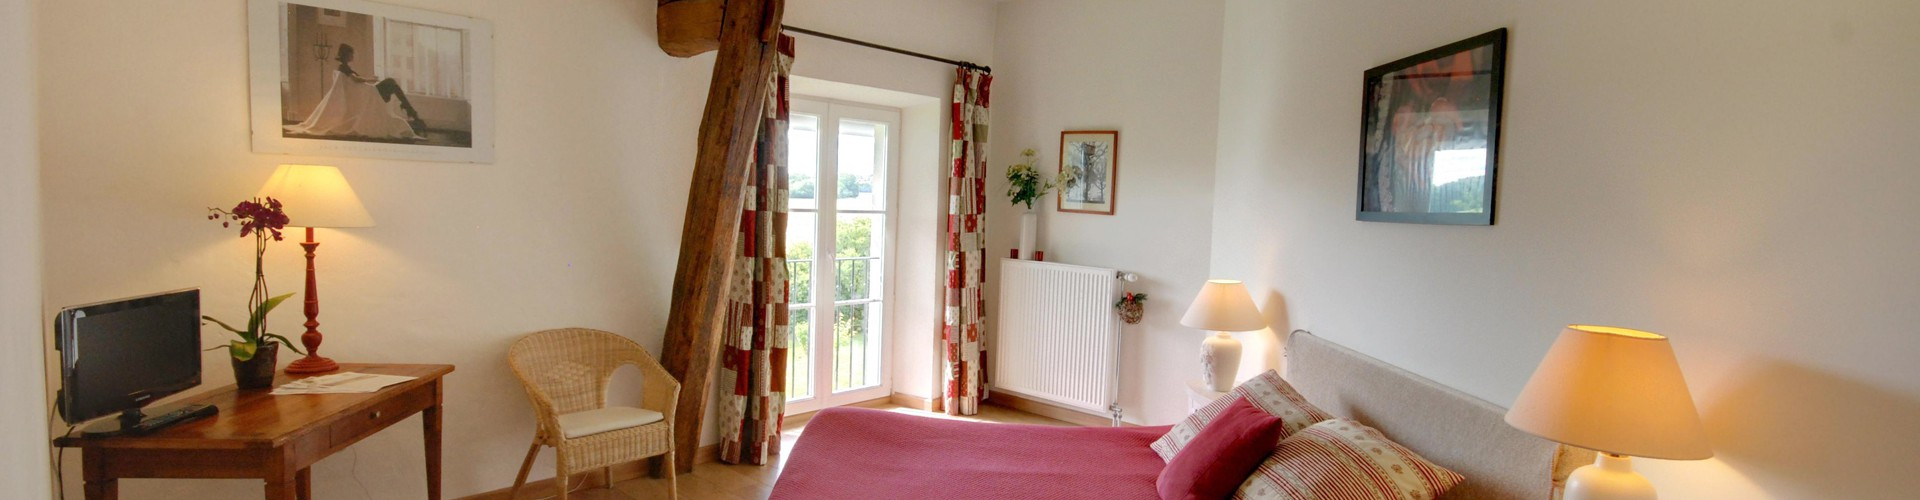 Ferme d'Orsonville - Bed and Breakfast - Patchwork